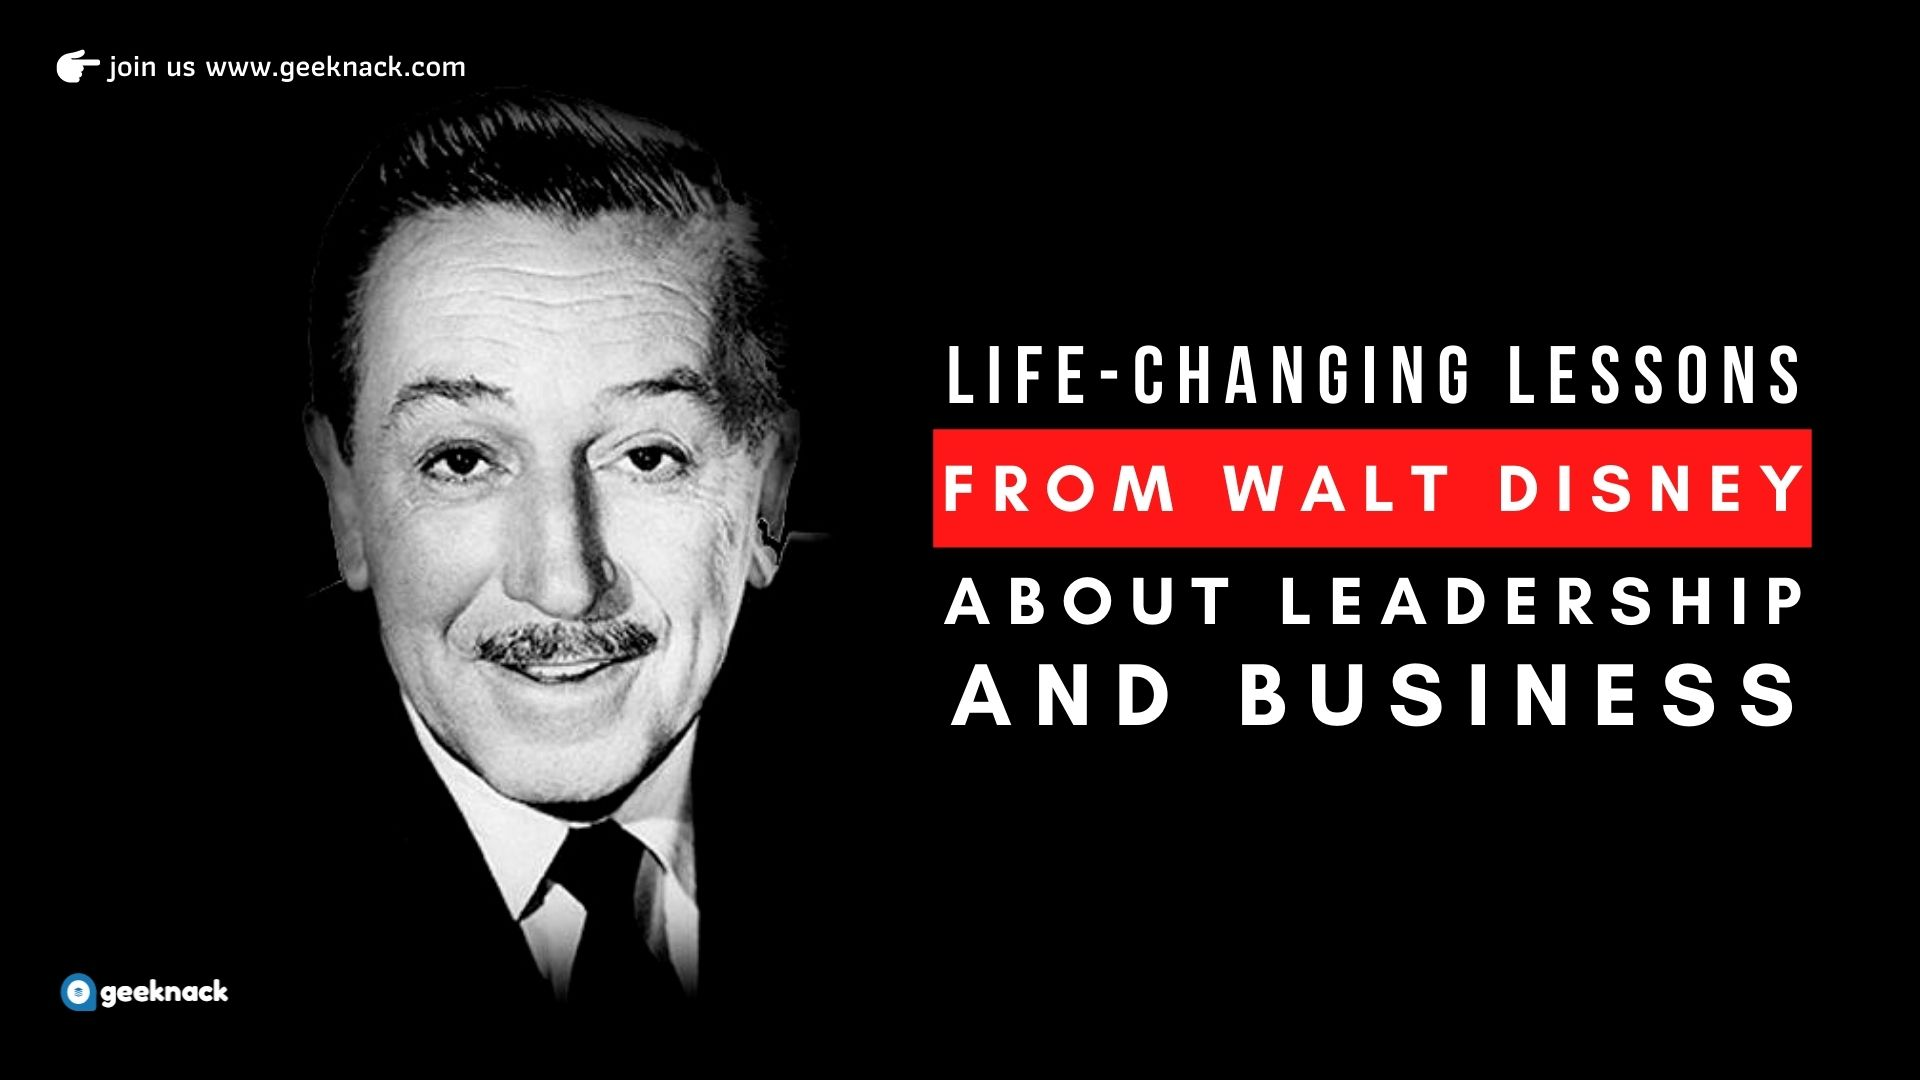 Life-Changing Lessons From Walt Disney About Leadership & Business